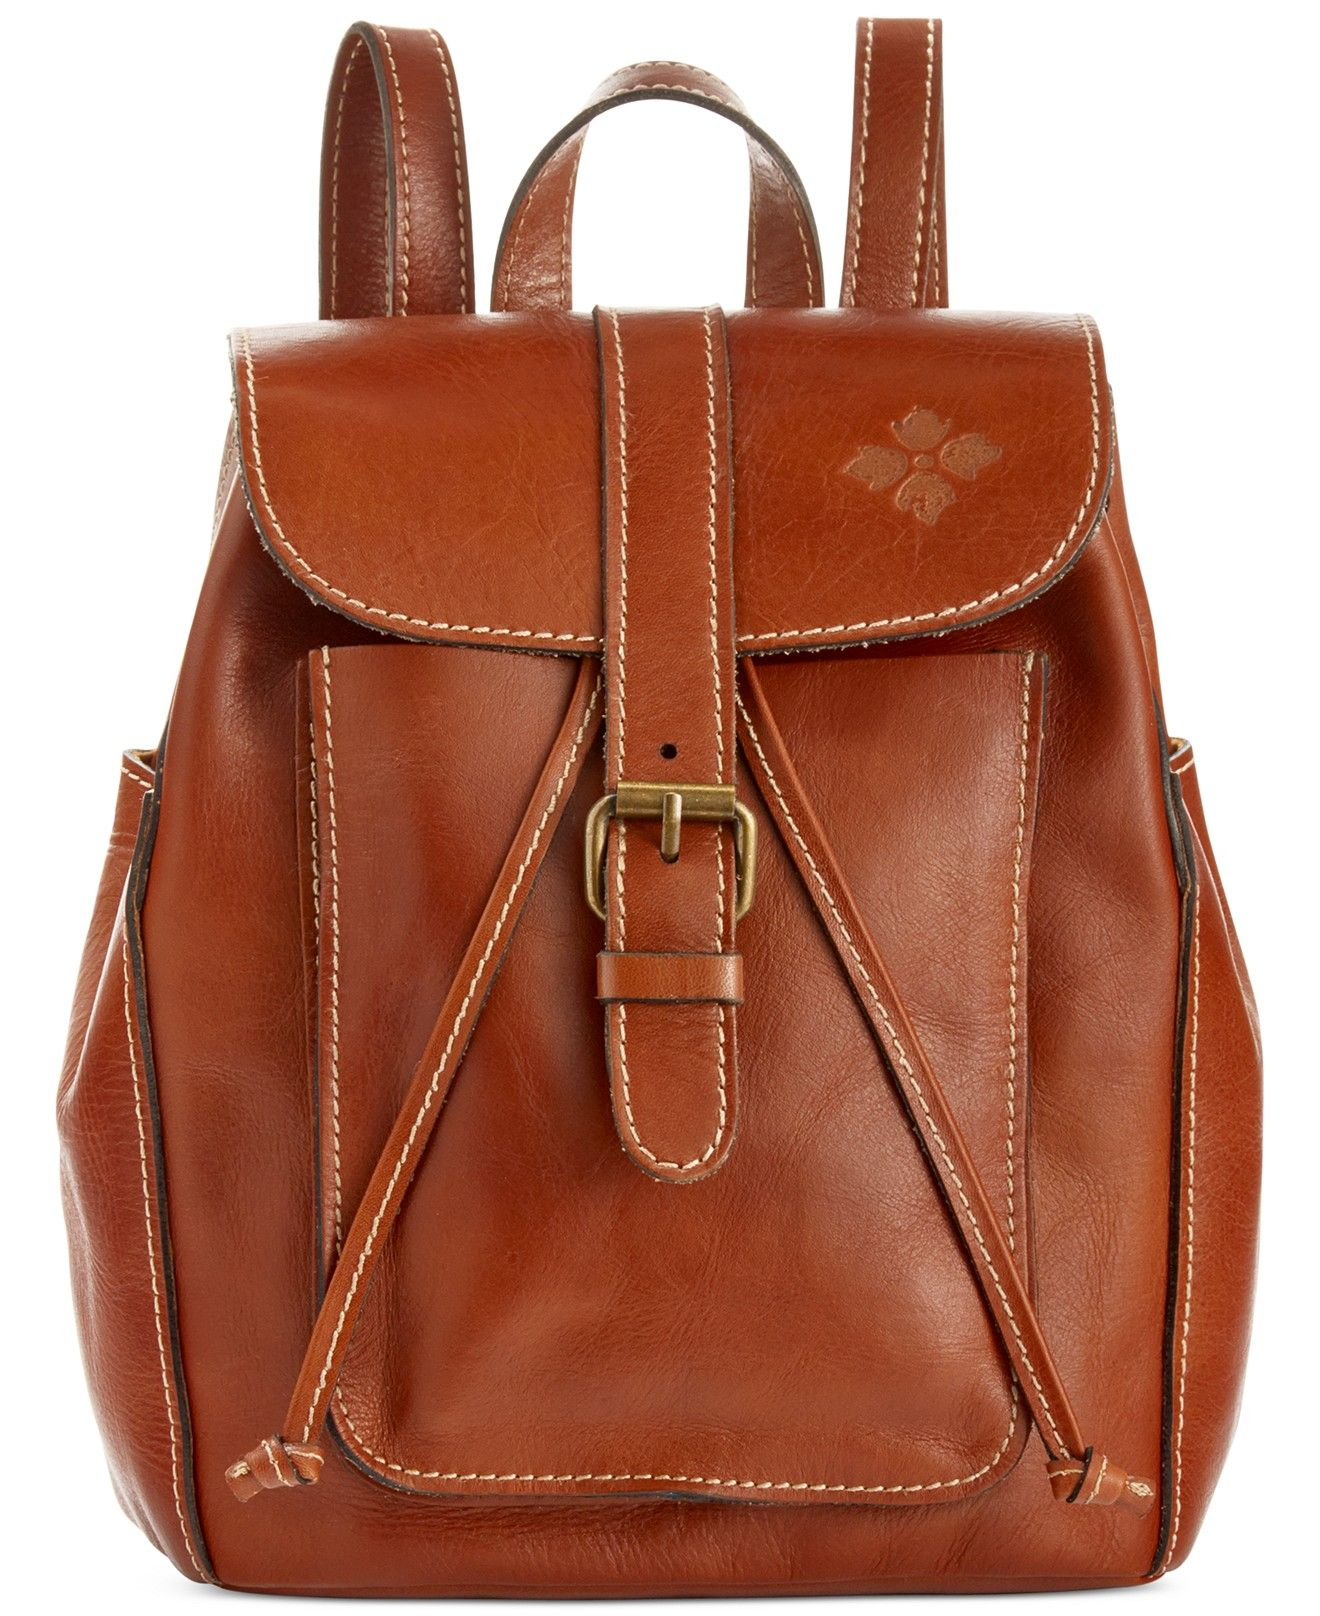 Patricia Nash Aberdeen Backpack - Patricia Nash - Handbags & Accessories - Macy's